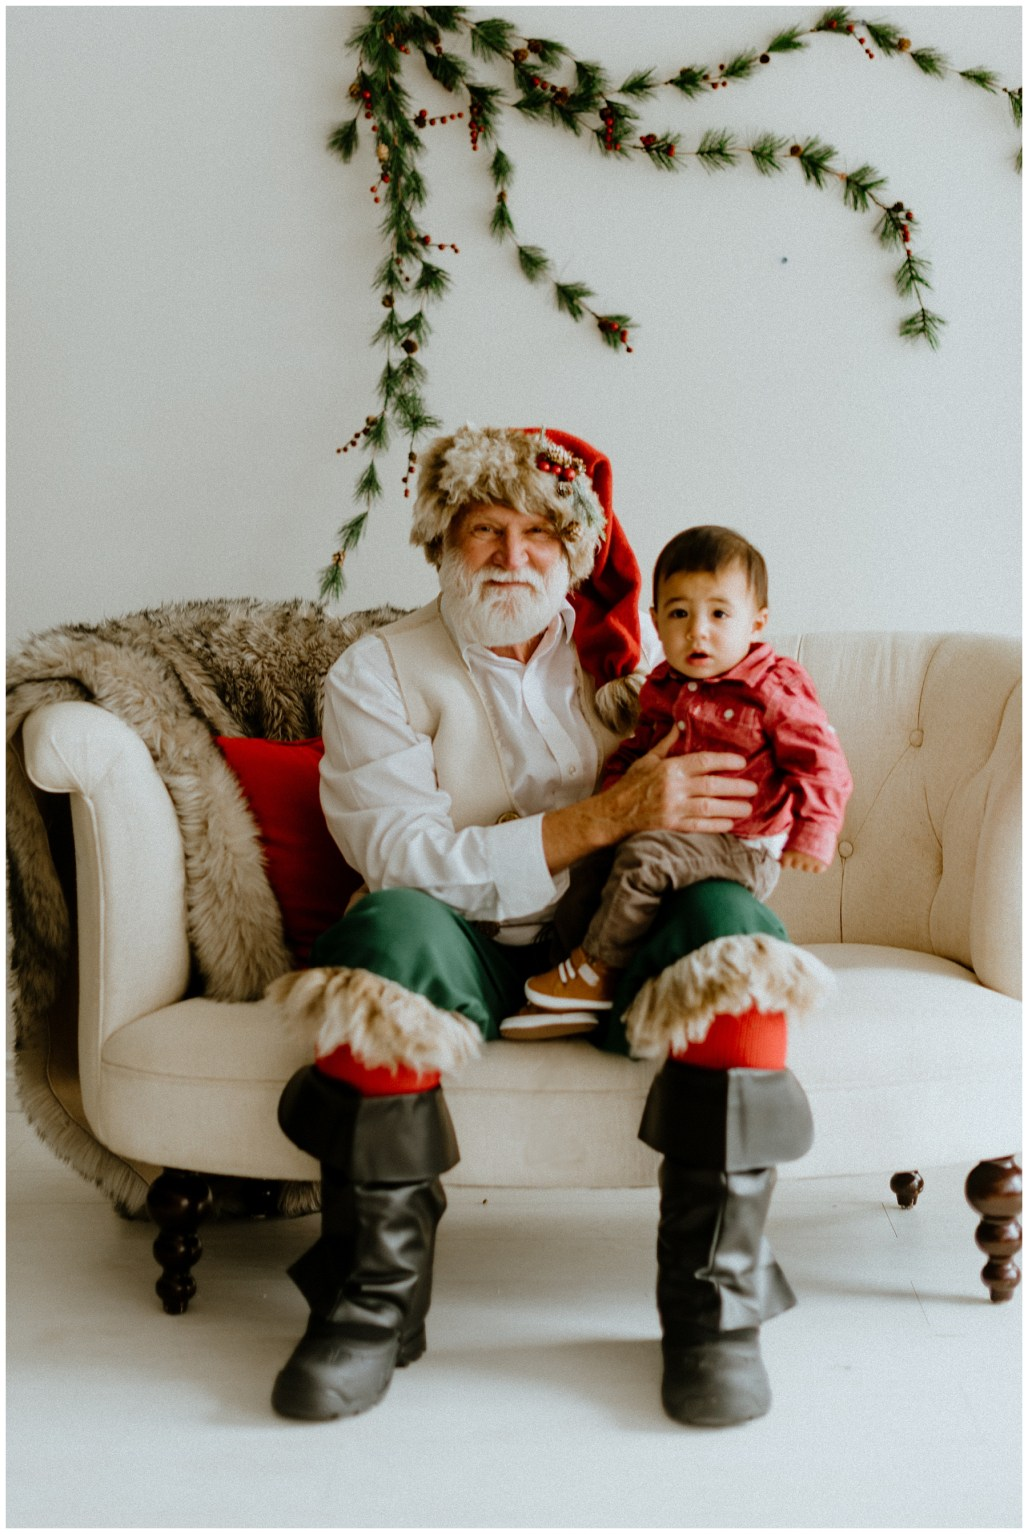 Best Spots to Meet Santa Clause Near, Seattle Santa, Best places around Seattle to get your kids' photo with Santa, Santa Northwest, Seattle Photographer, Seattle Family Photographer